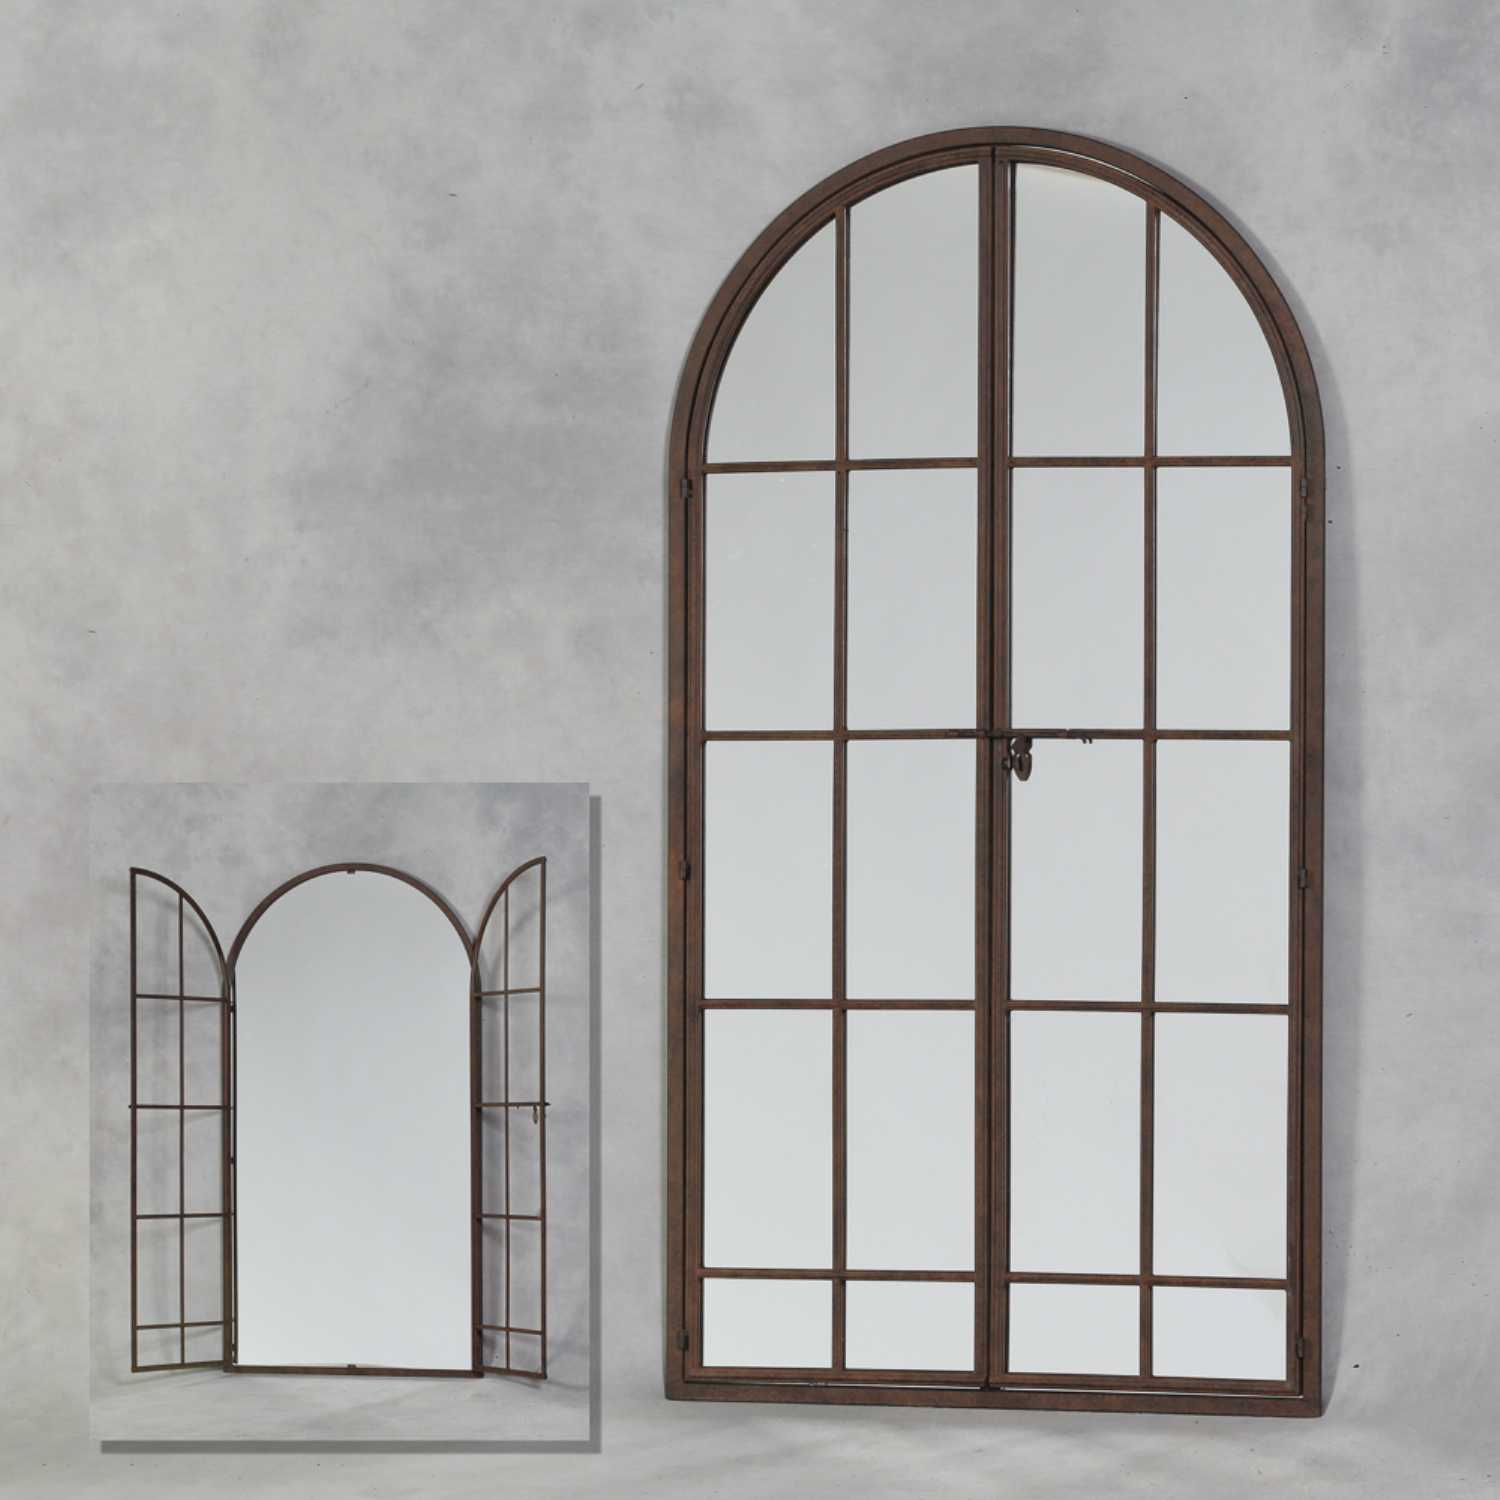 Large Arched Metal Opening Window Wall Mirror Antiqued Iron Frame Within Metal Arch Window Wall Mirrors (Image 12 of 20)